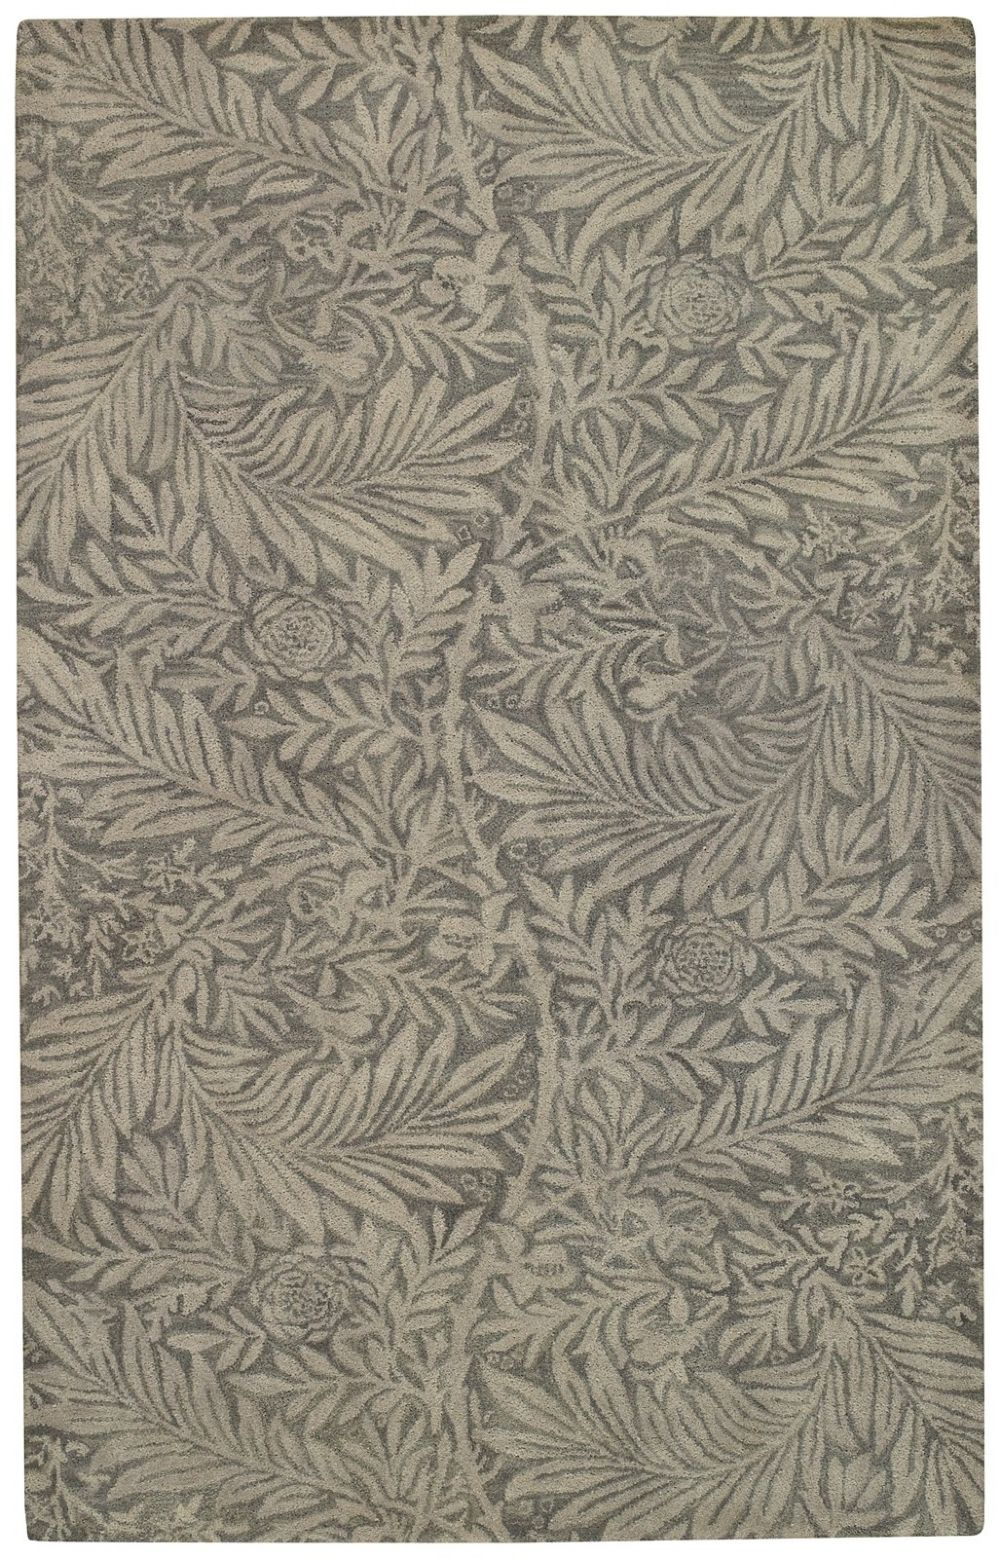 capel leaflet transitional area rug collection